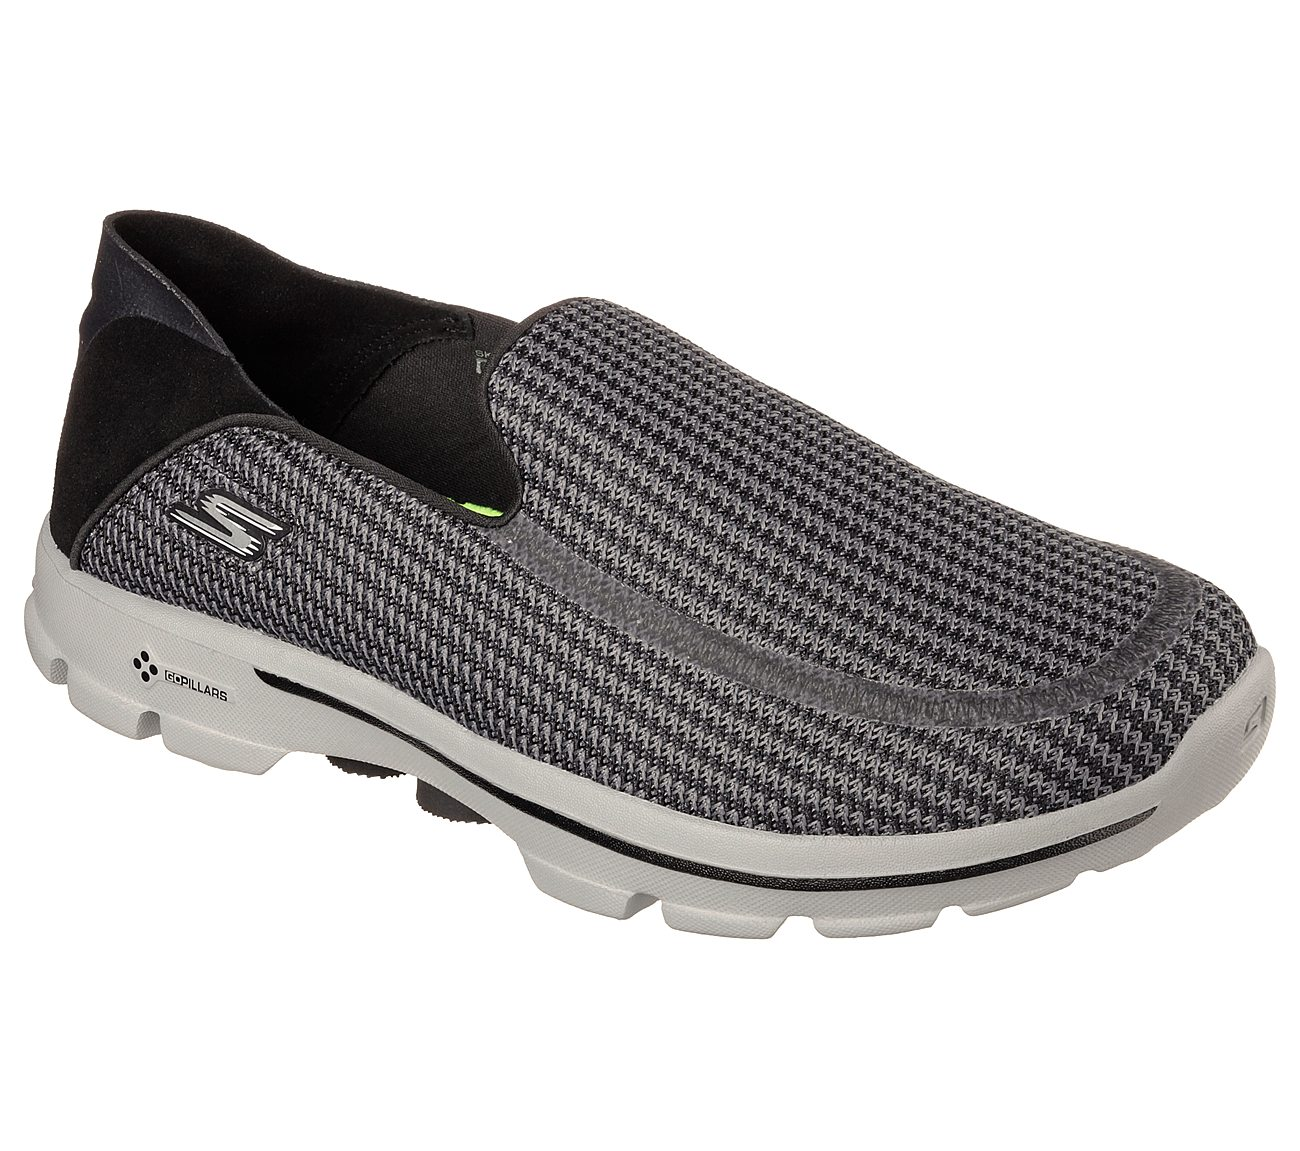 skechers shoes for men 2015